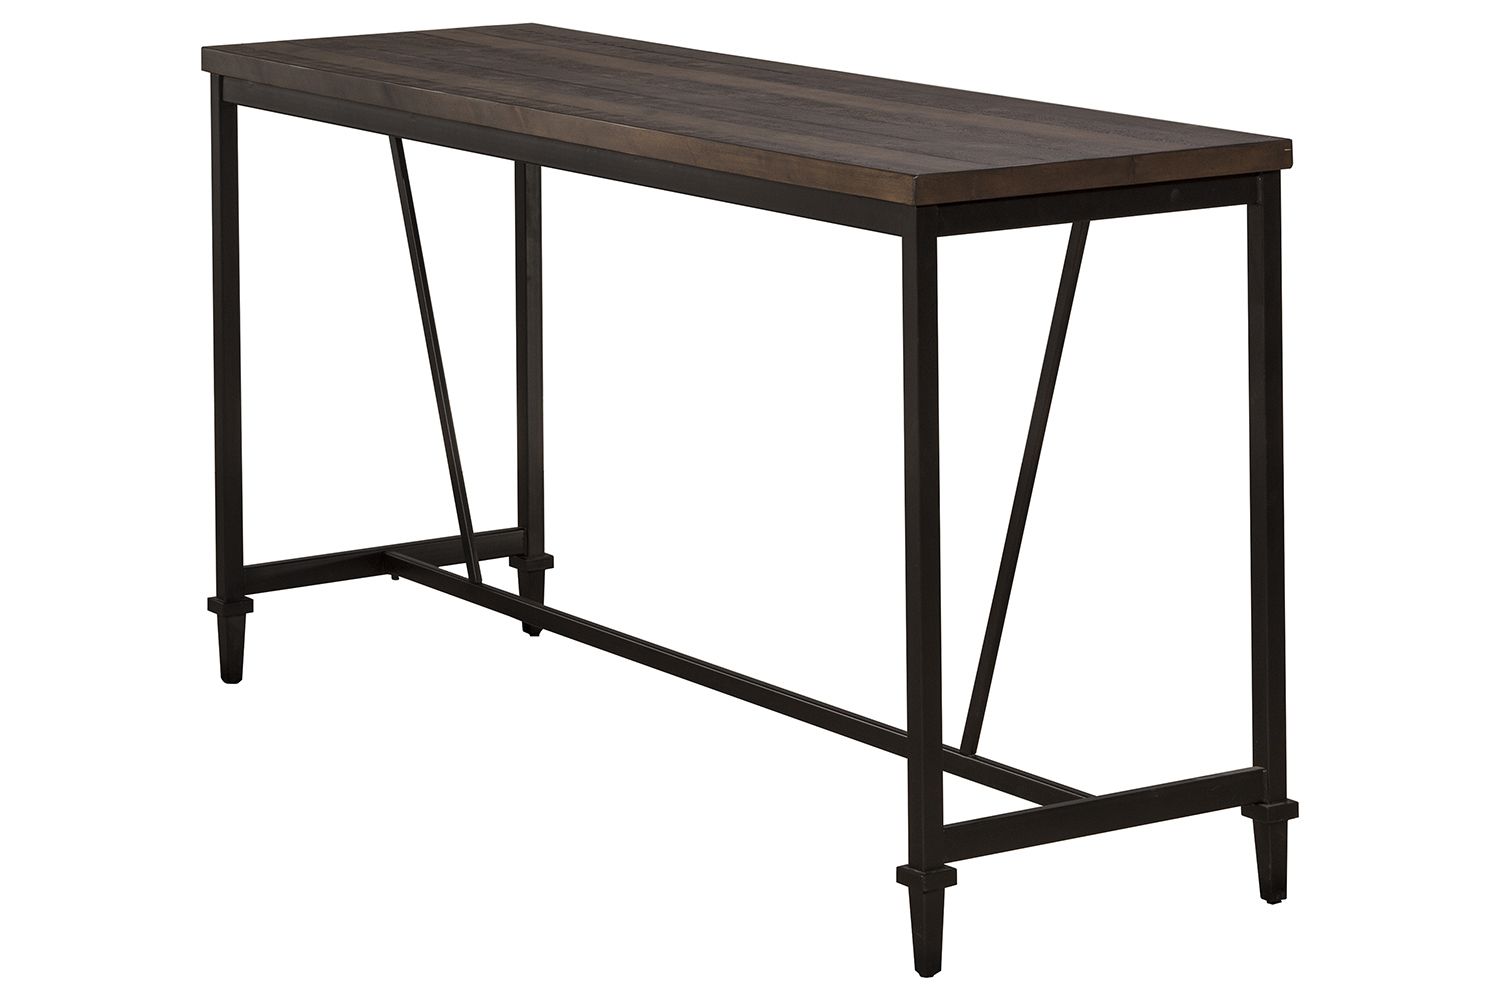 Hillsdale Trevino Counter Height Table - Walnut/Brown